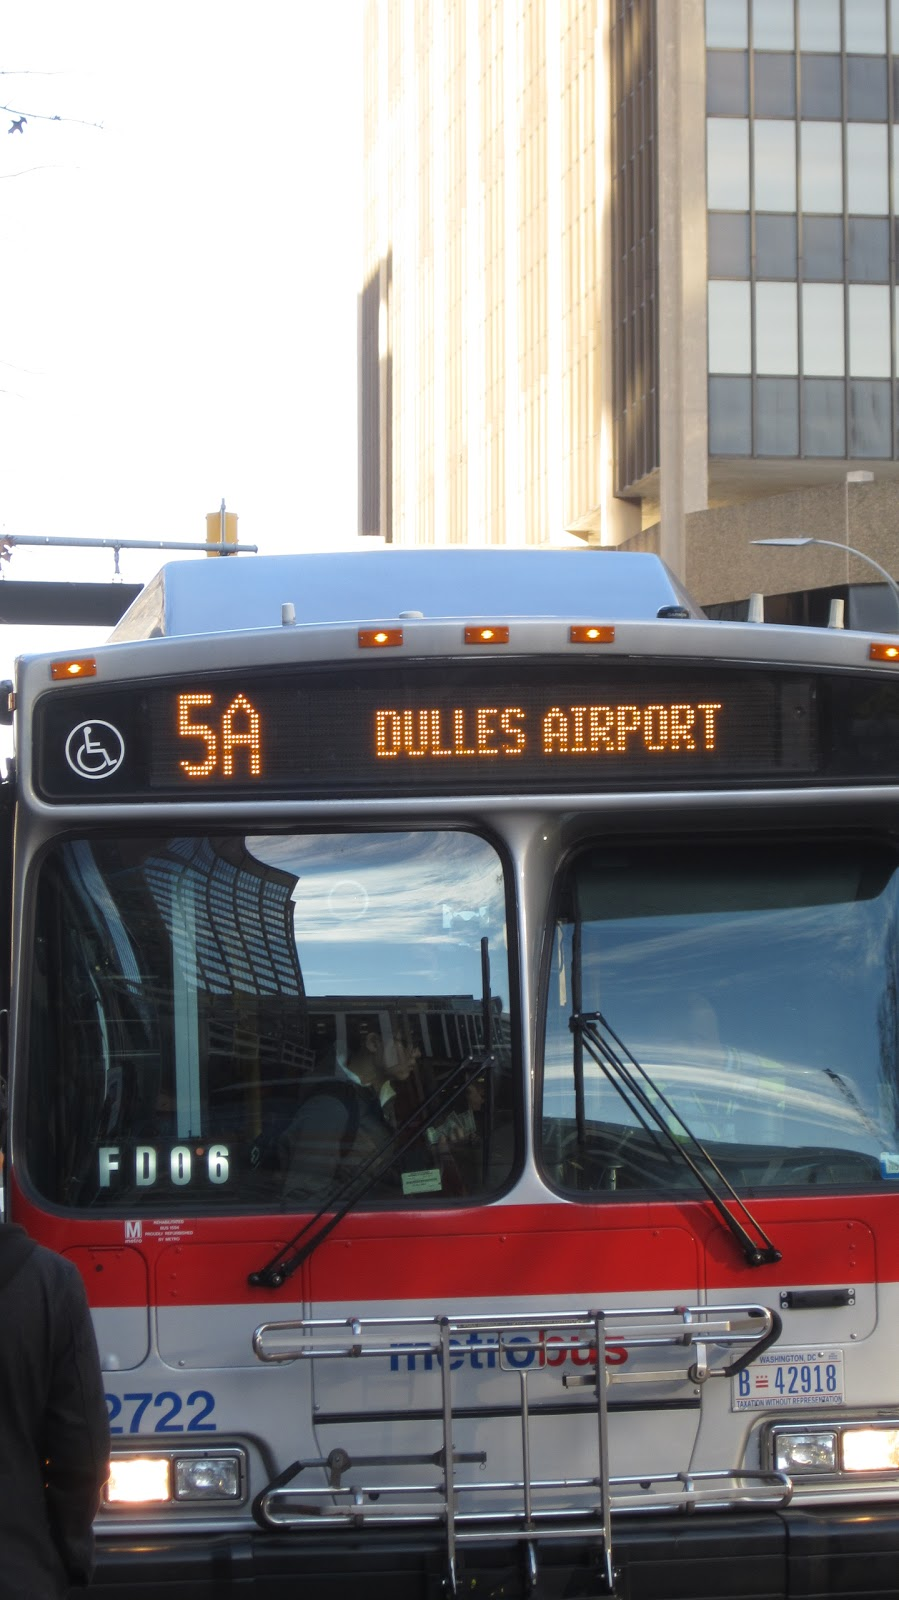 Getting to Dulles International Airport